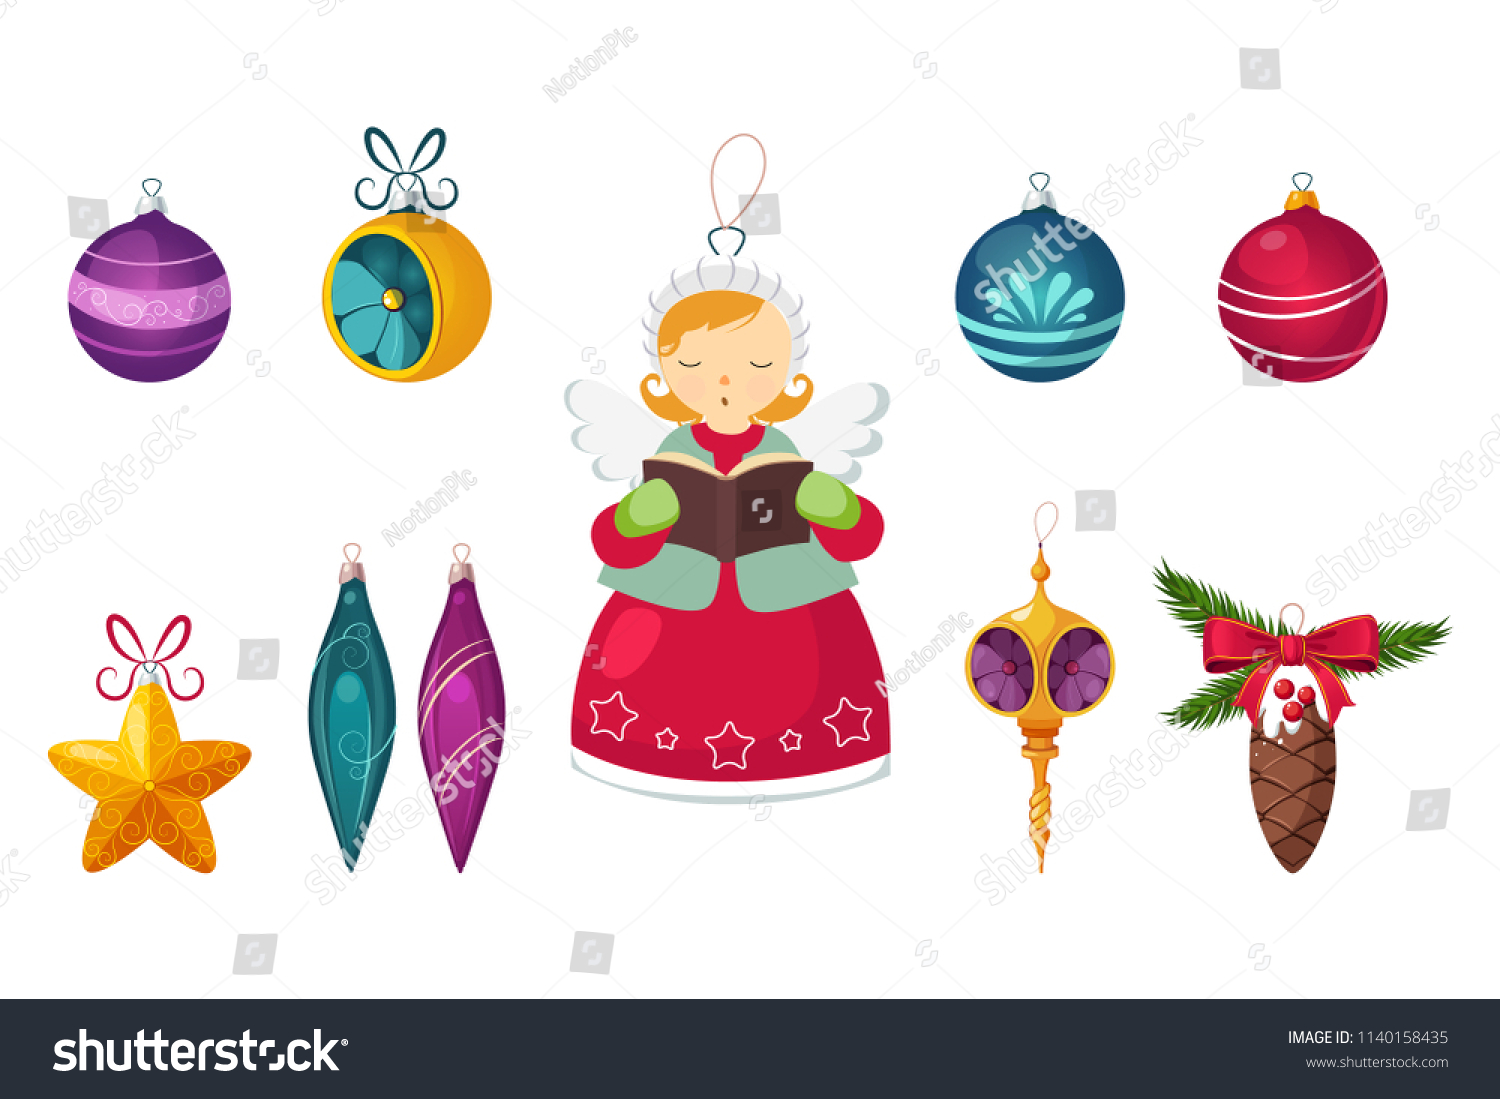 New Year Traditional Symbols Collection Christmas Stock Vector ...